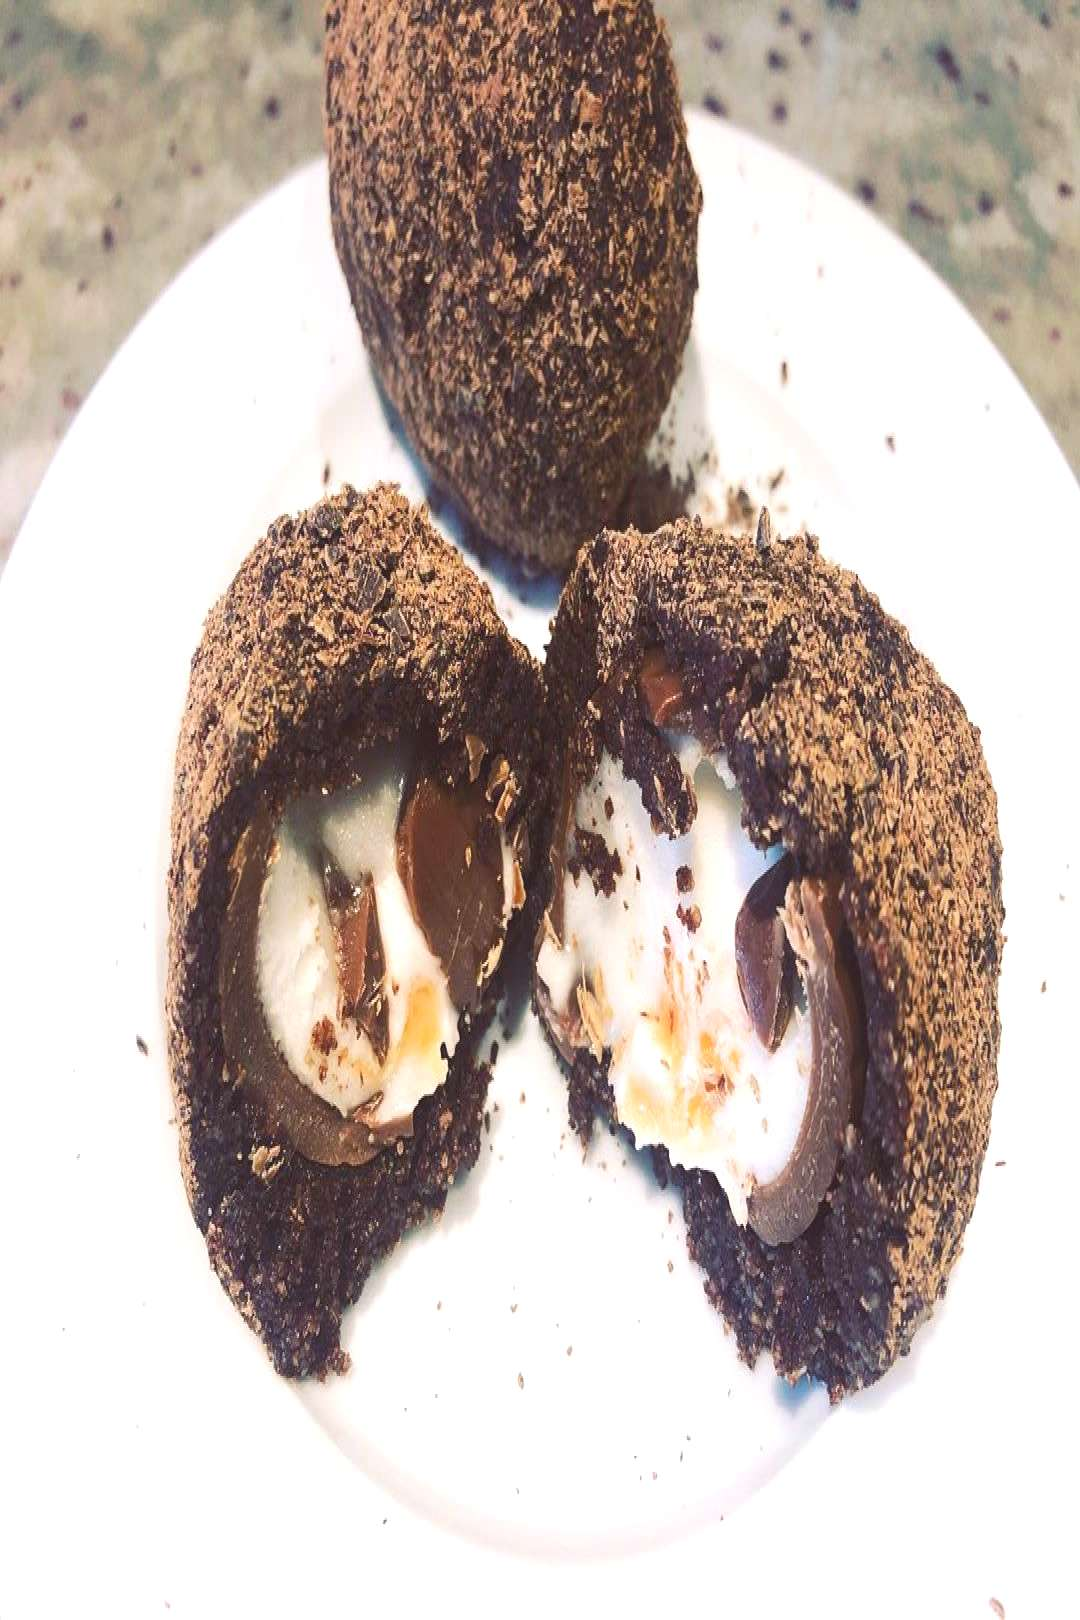 New for Easter...creme egg scotch eggs. Creme egg cover with truf